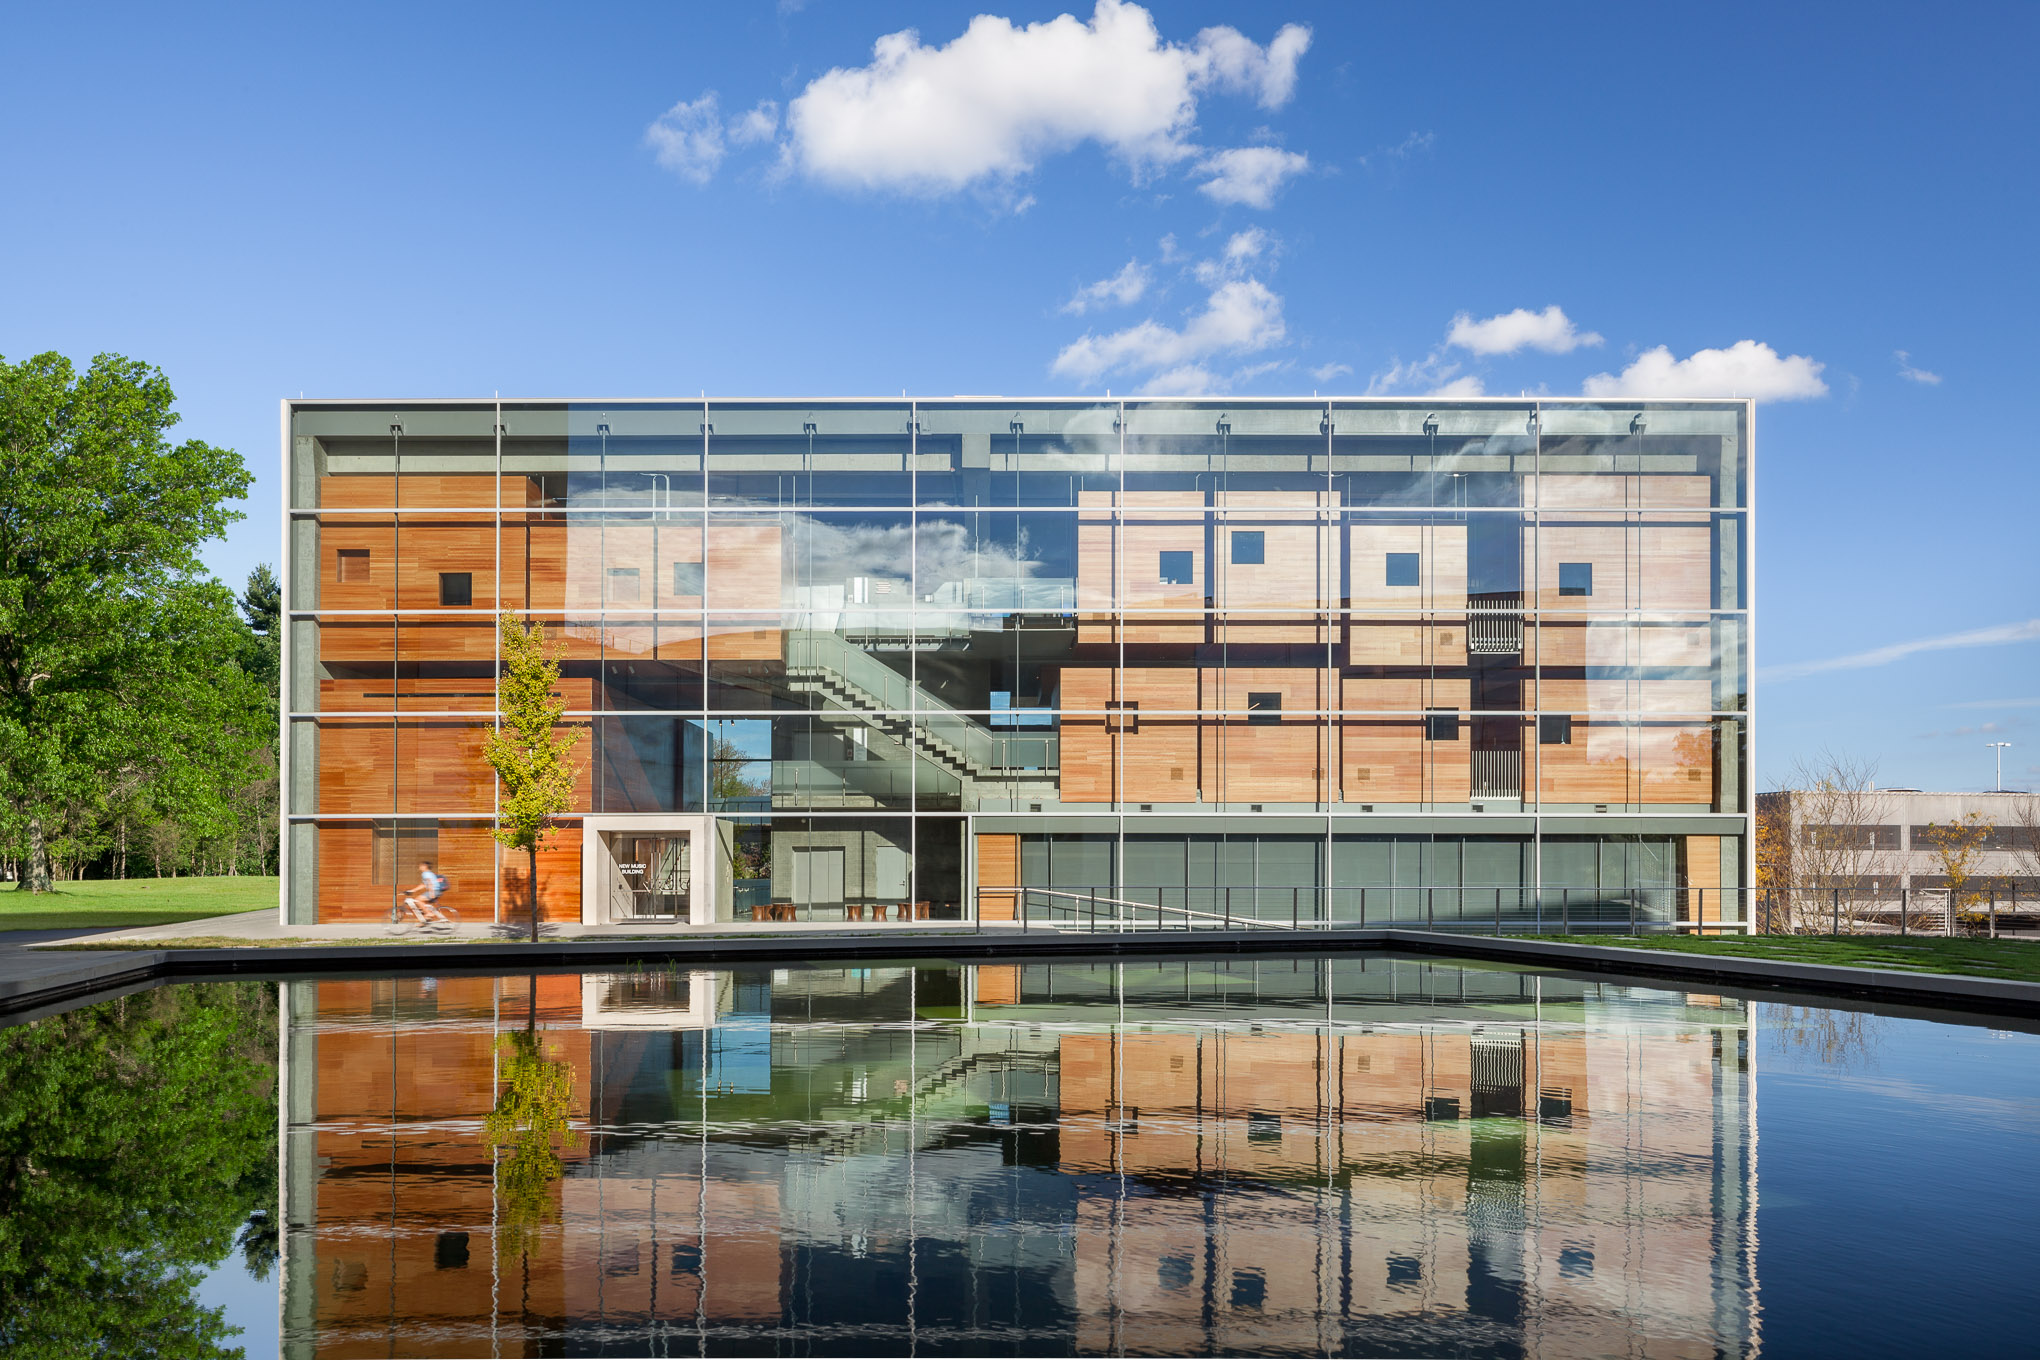 Lewis Center for the Arts, Princeton University, Steven Holl Architects